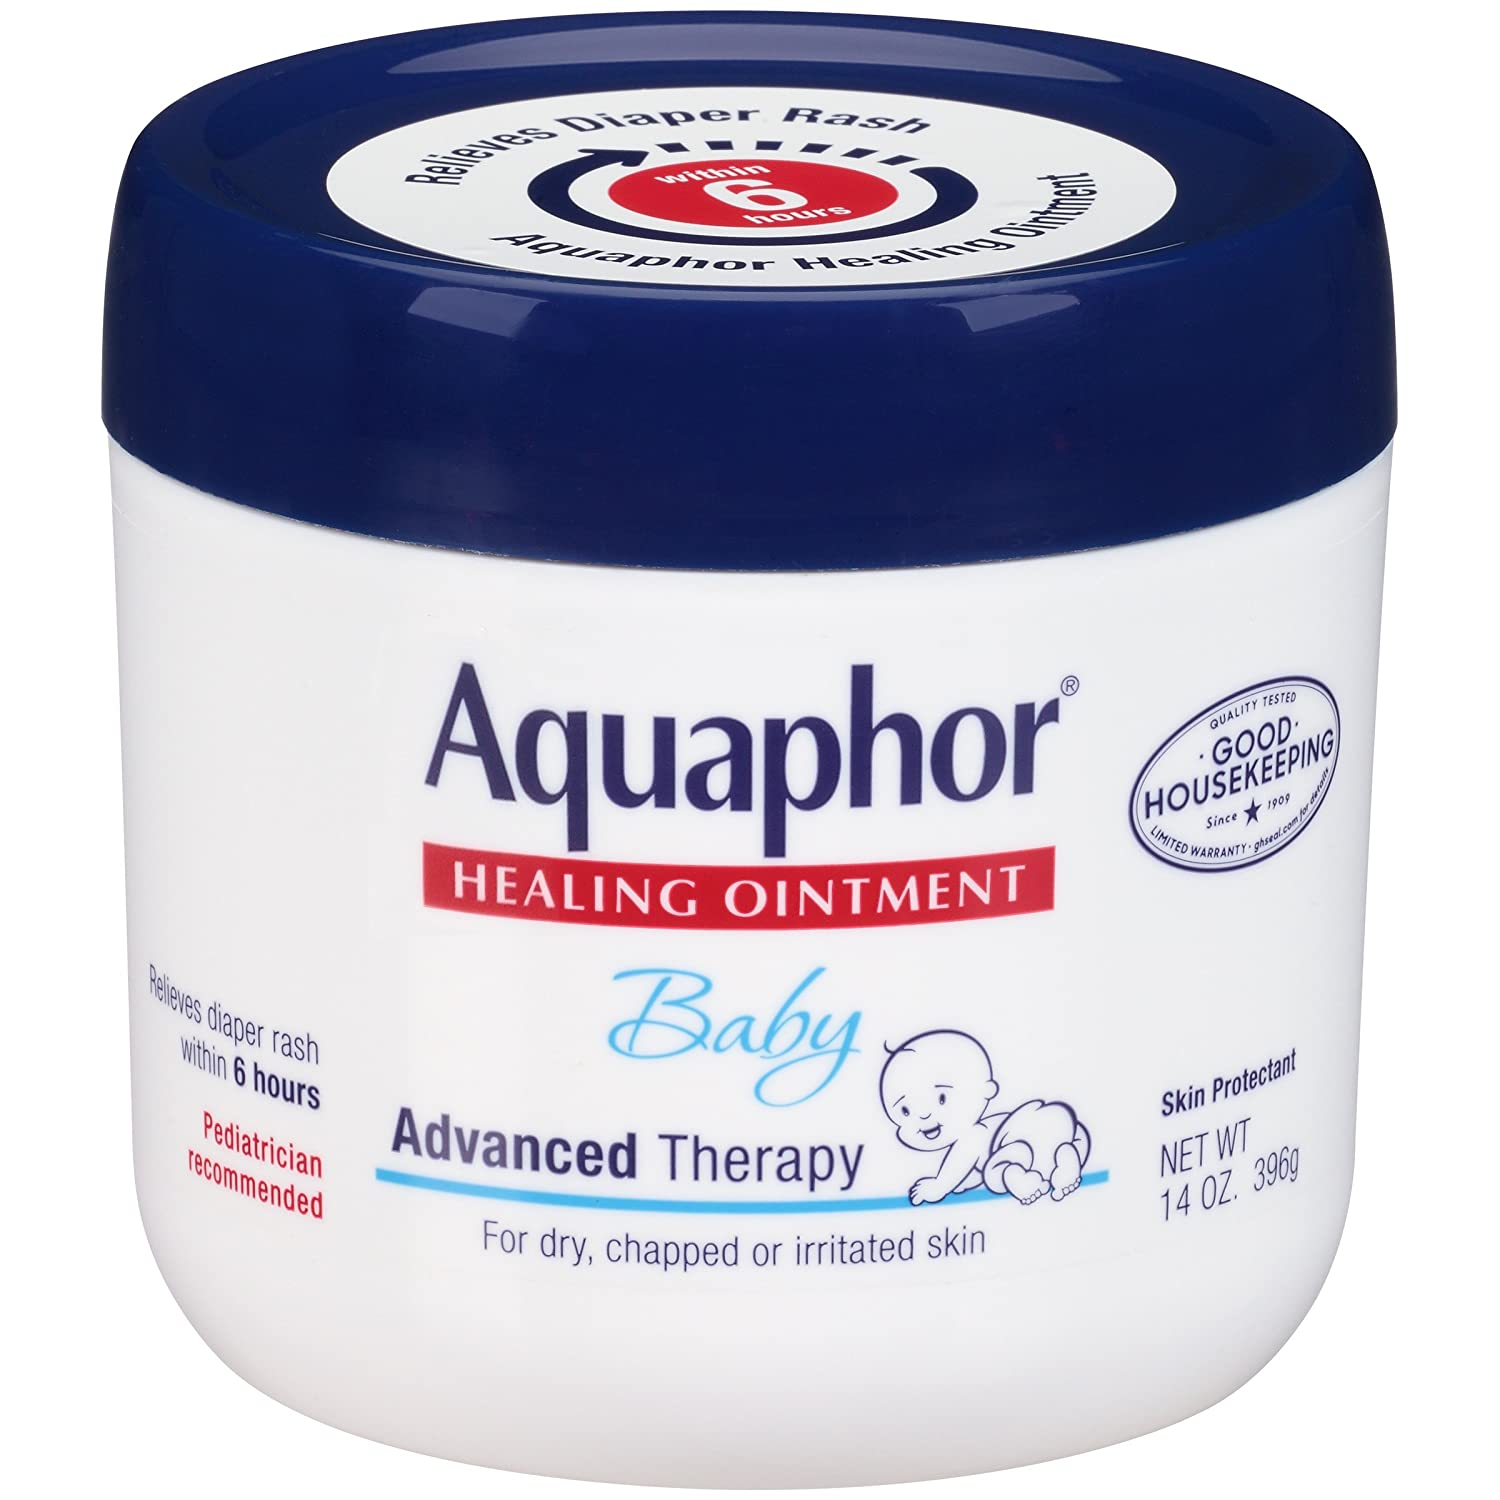 Aquaphor Baby Healing Ointment - Advance Therapy for Diaper Rash, Chapped Cheeks and Minor Scrapes - 14. Oz Jar $11.34